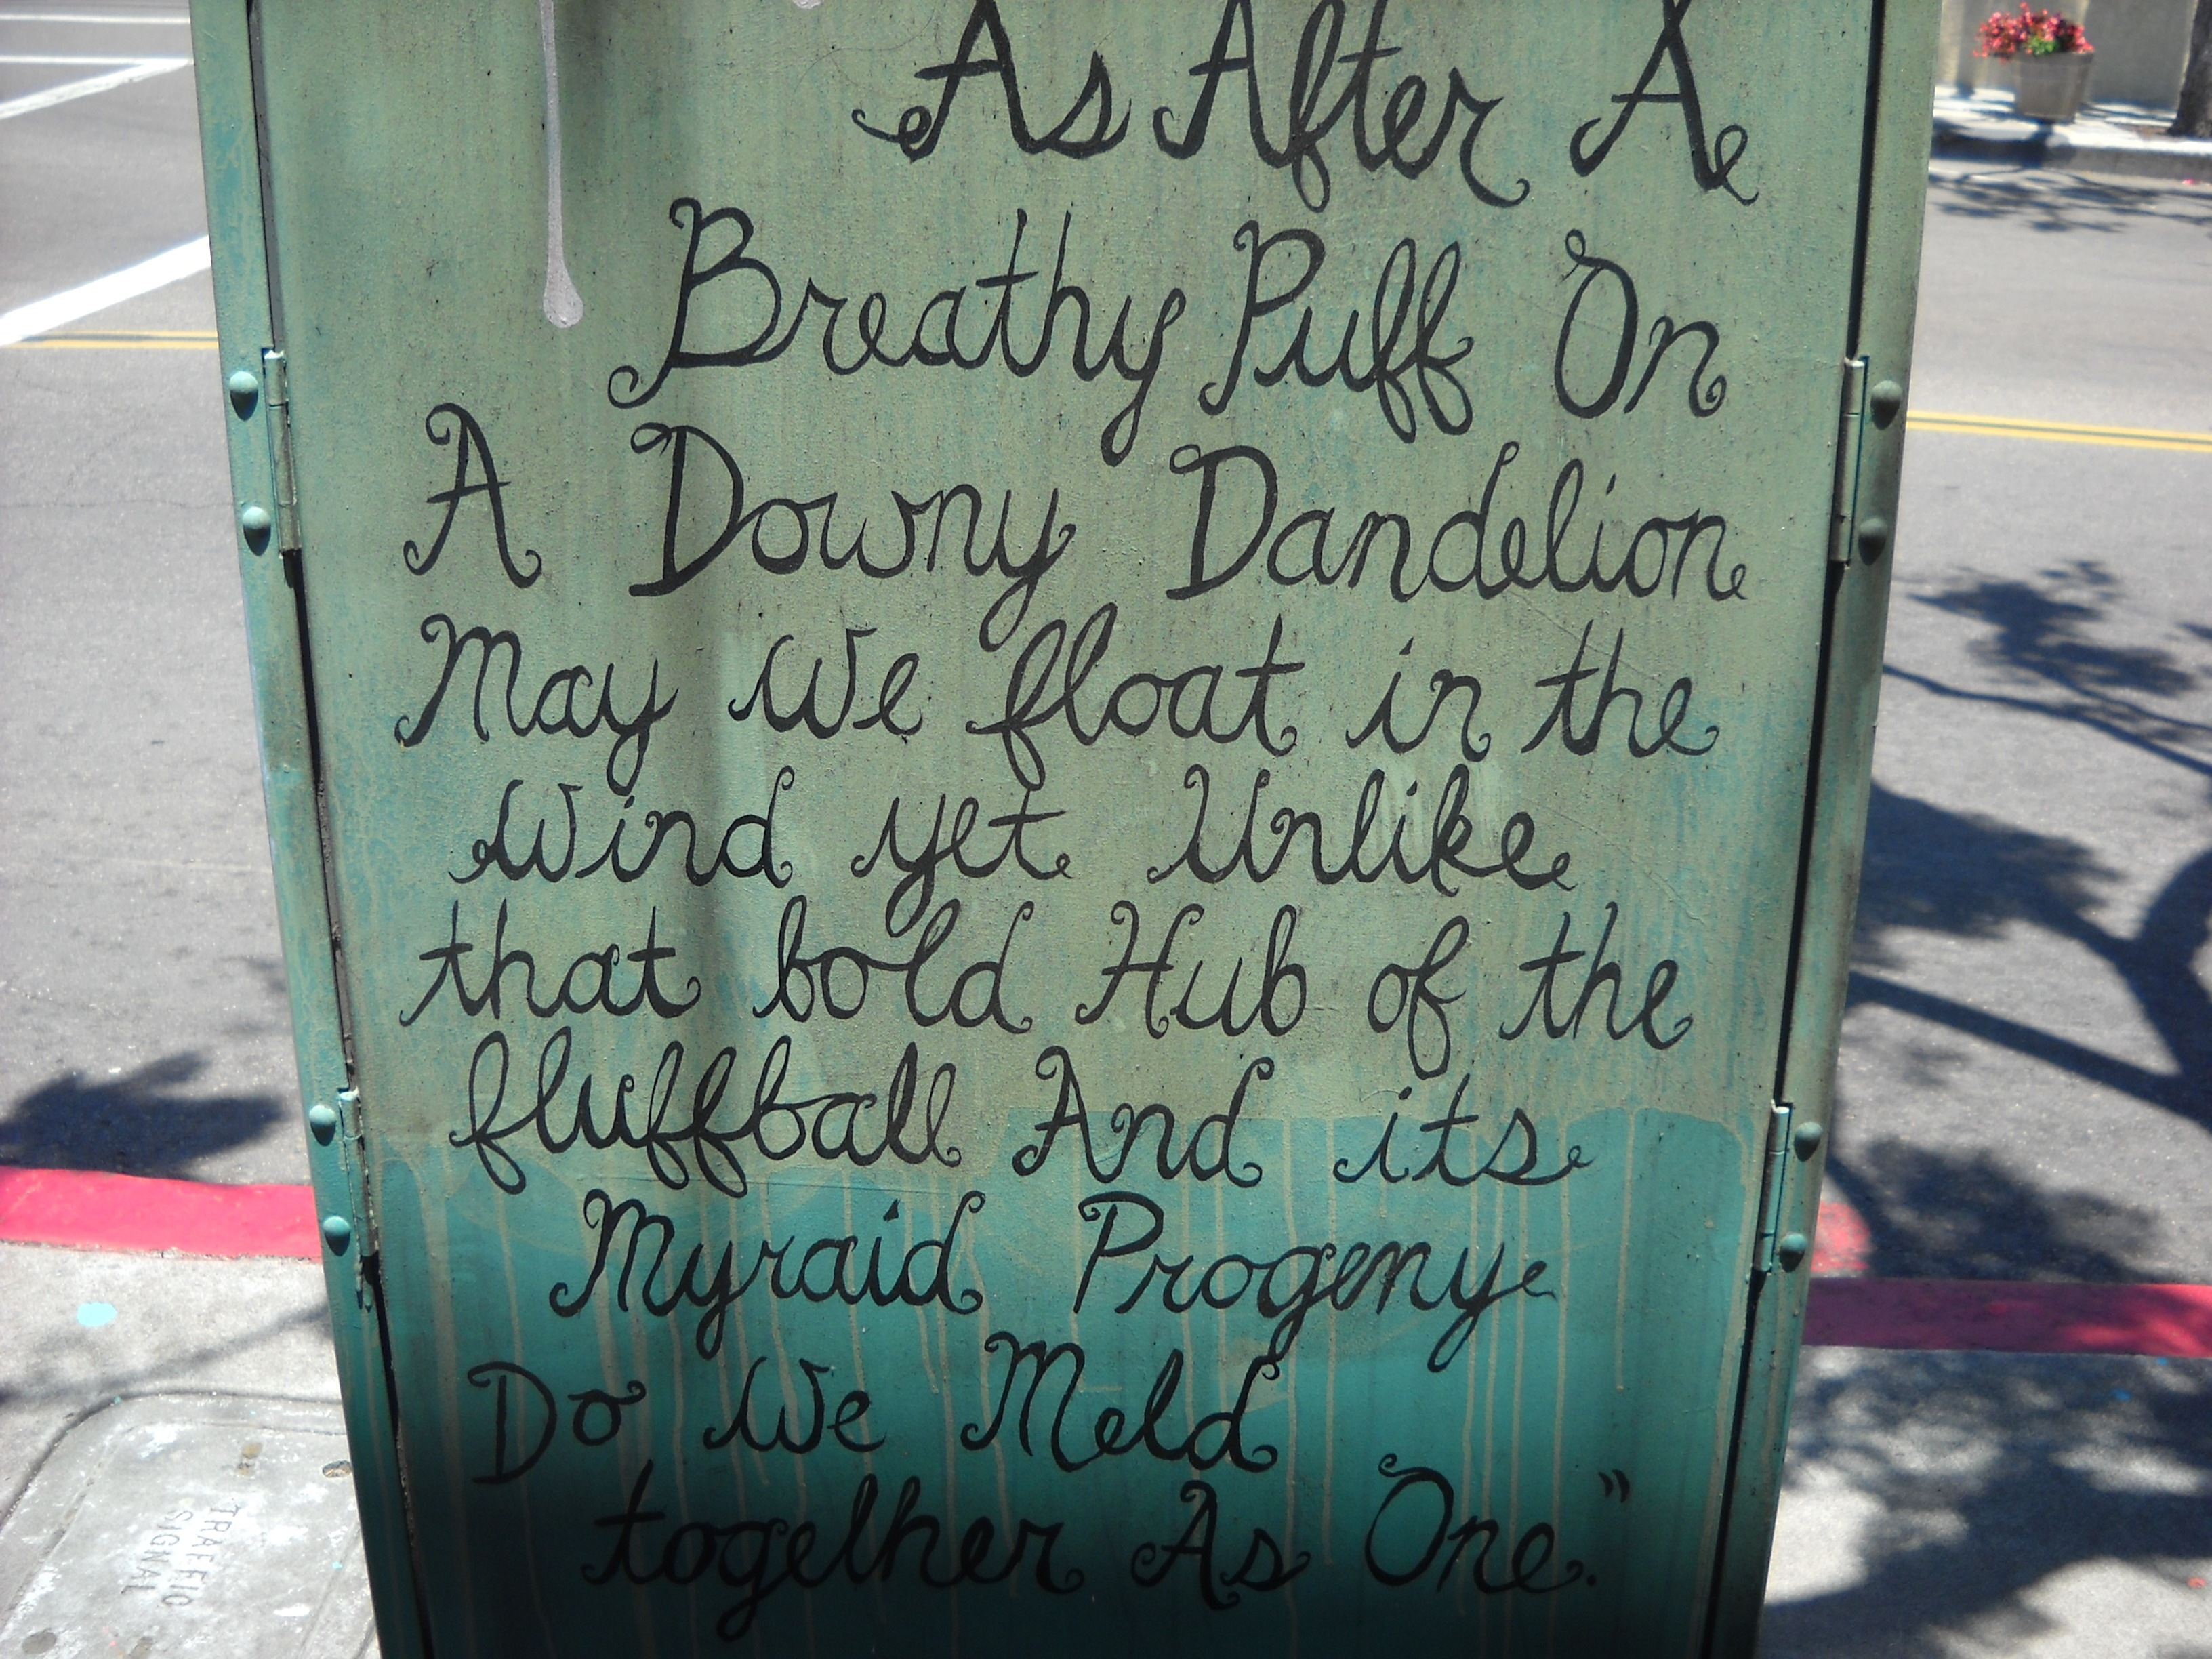 Written prose on a utility box near Canon Street and Rosecrans in Point Loma.